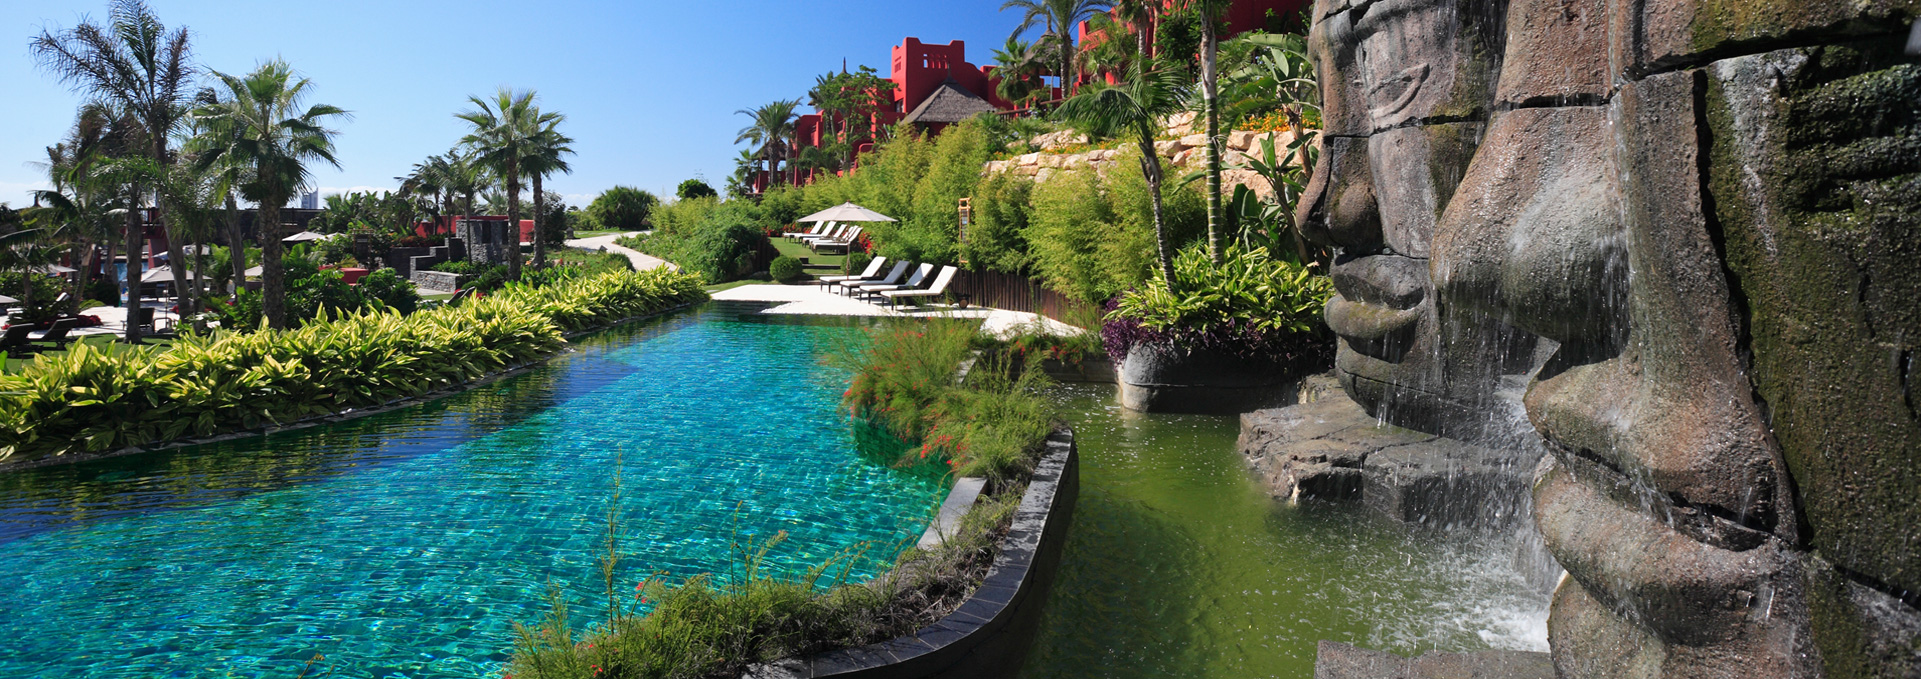 Luxury Resorts In Spain Asian Pools Asia Gardens Hotel